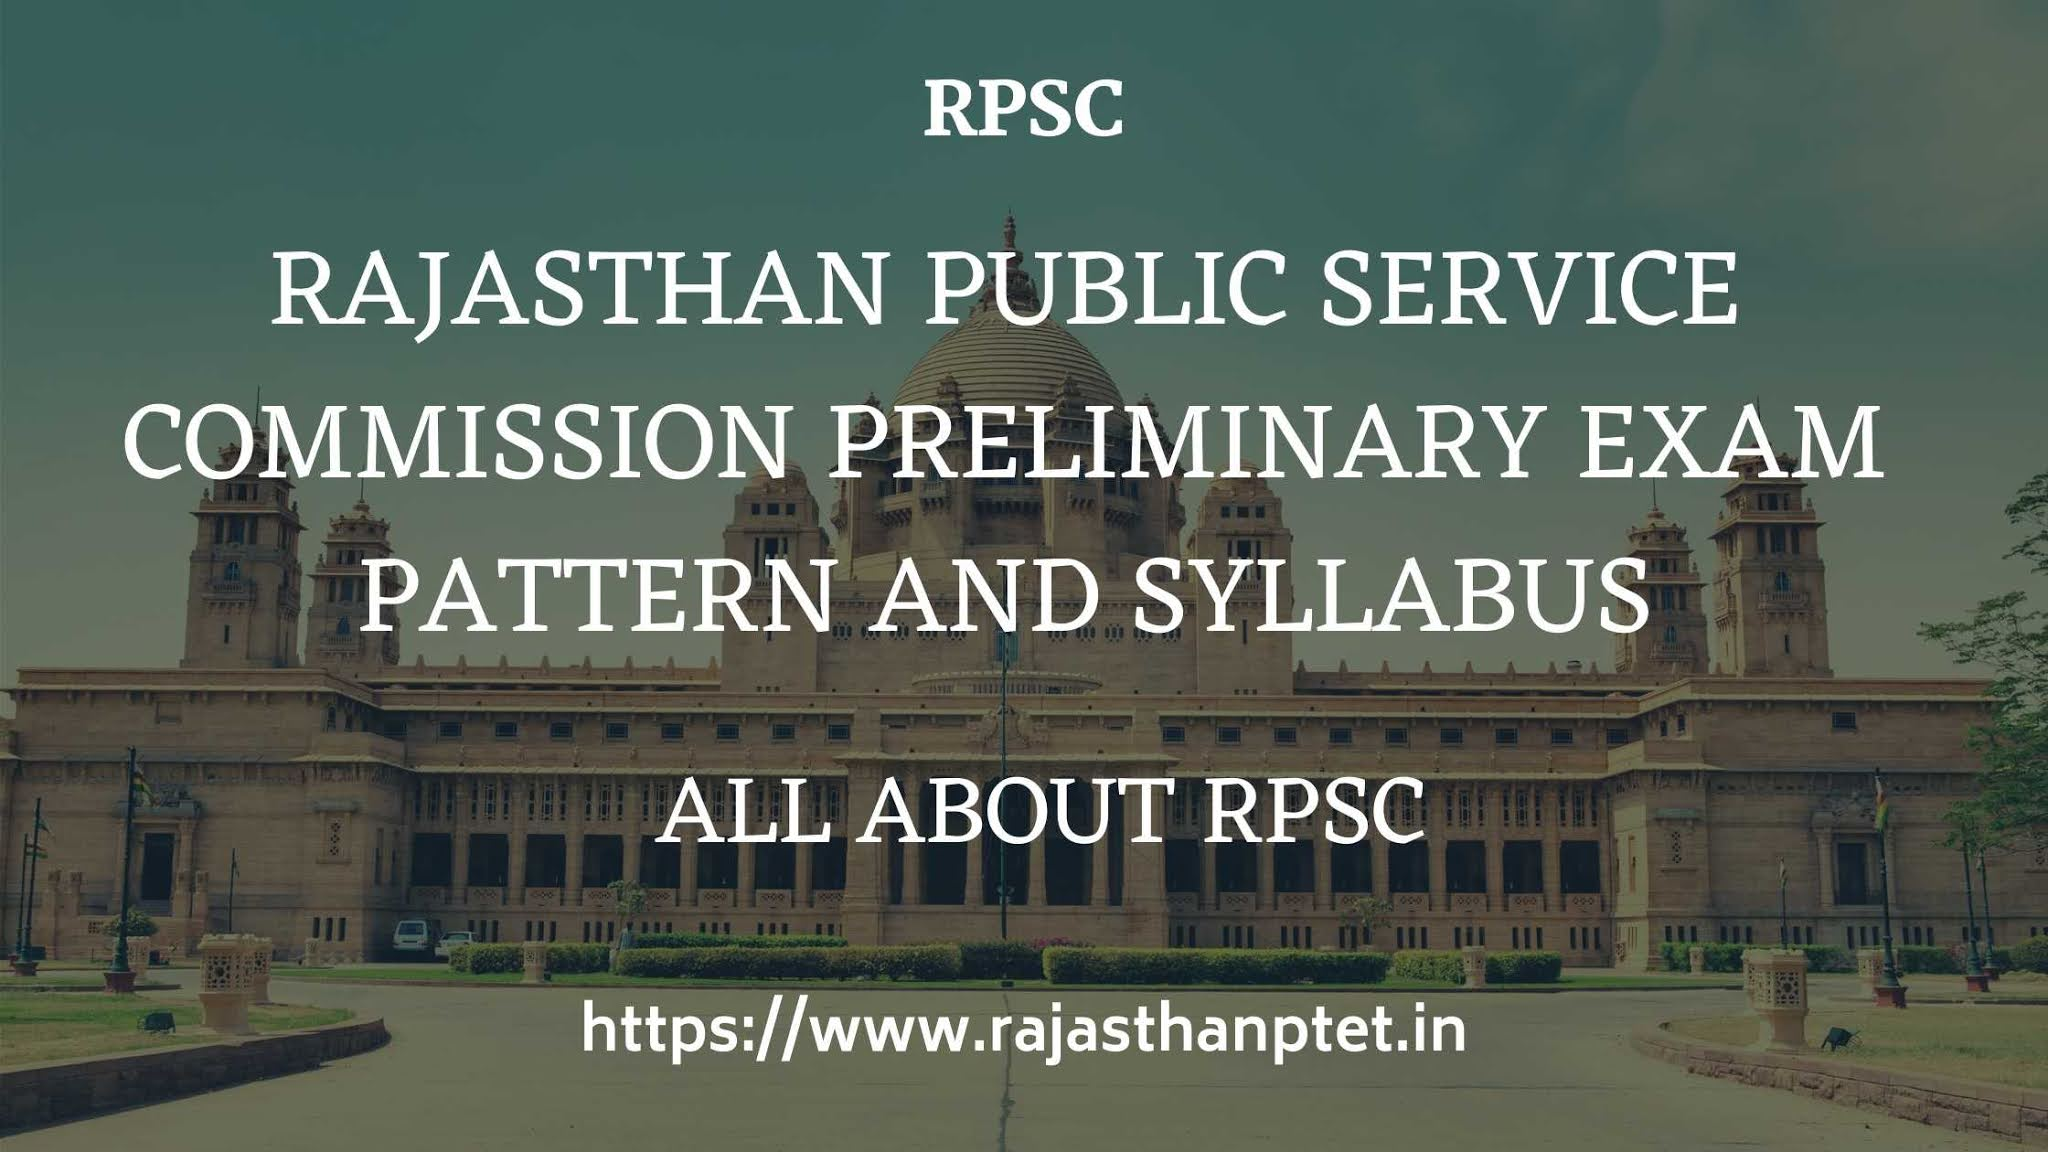 Rajasthan-Public-Service-Commission-Preliminary-Exam-Pattern-and-Syllabus